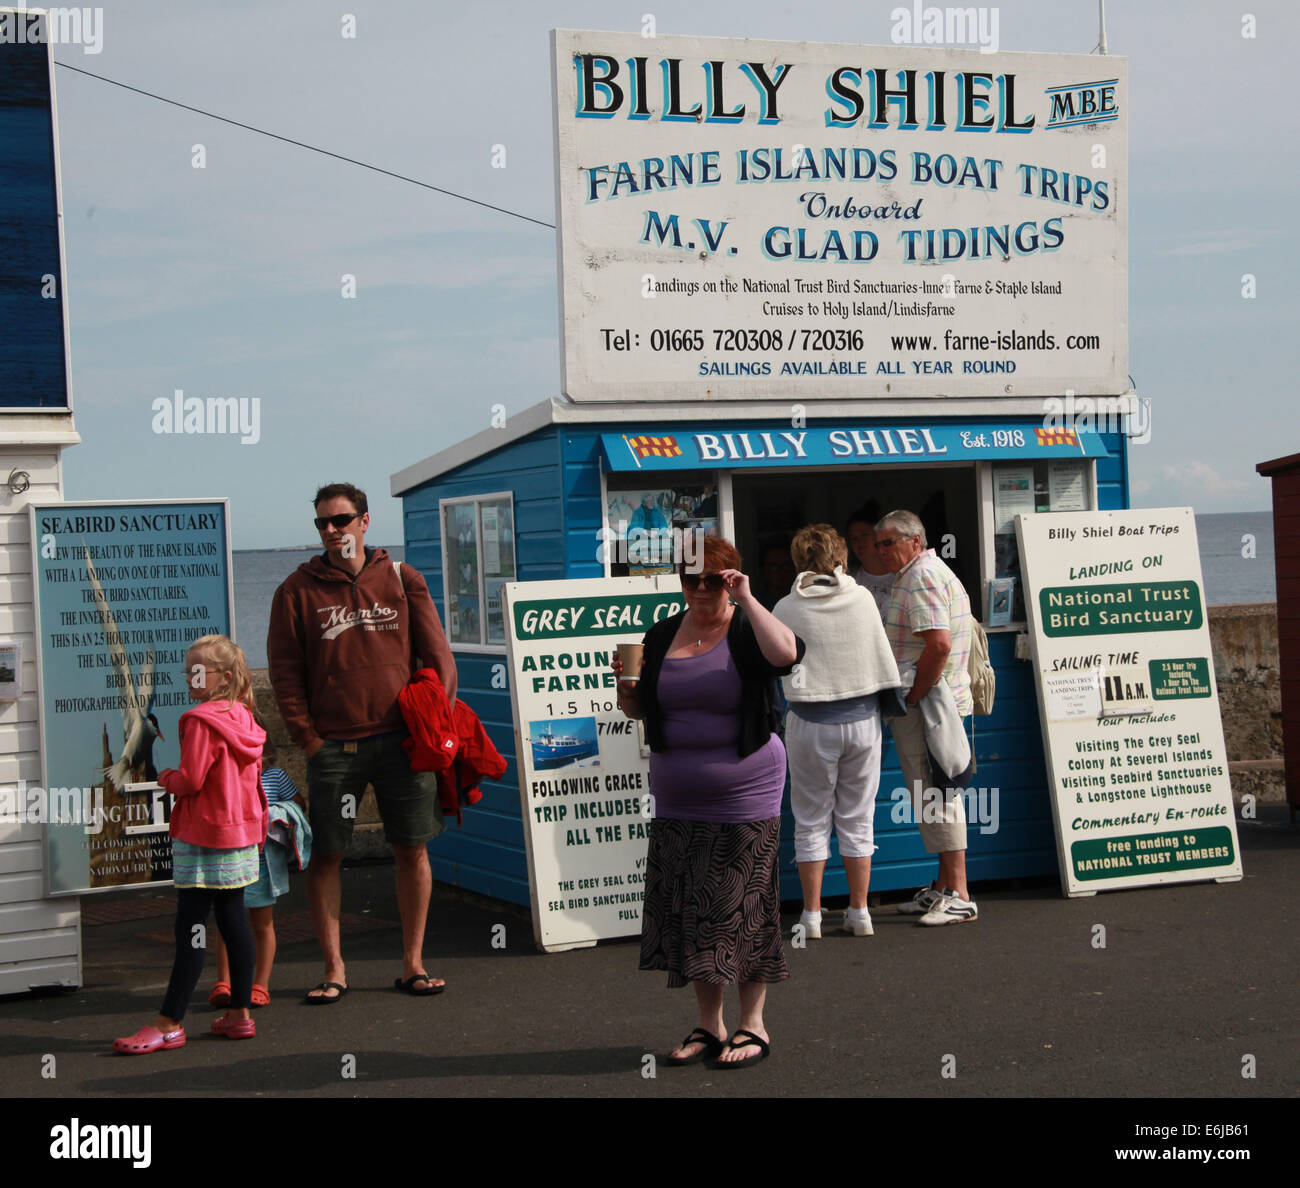 Billy Shiel boat Tickets being sold from sheds at Seahouses, for Farne Island trips, NE England, UK - Stock Image